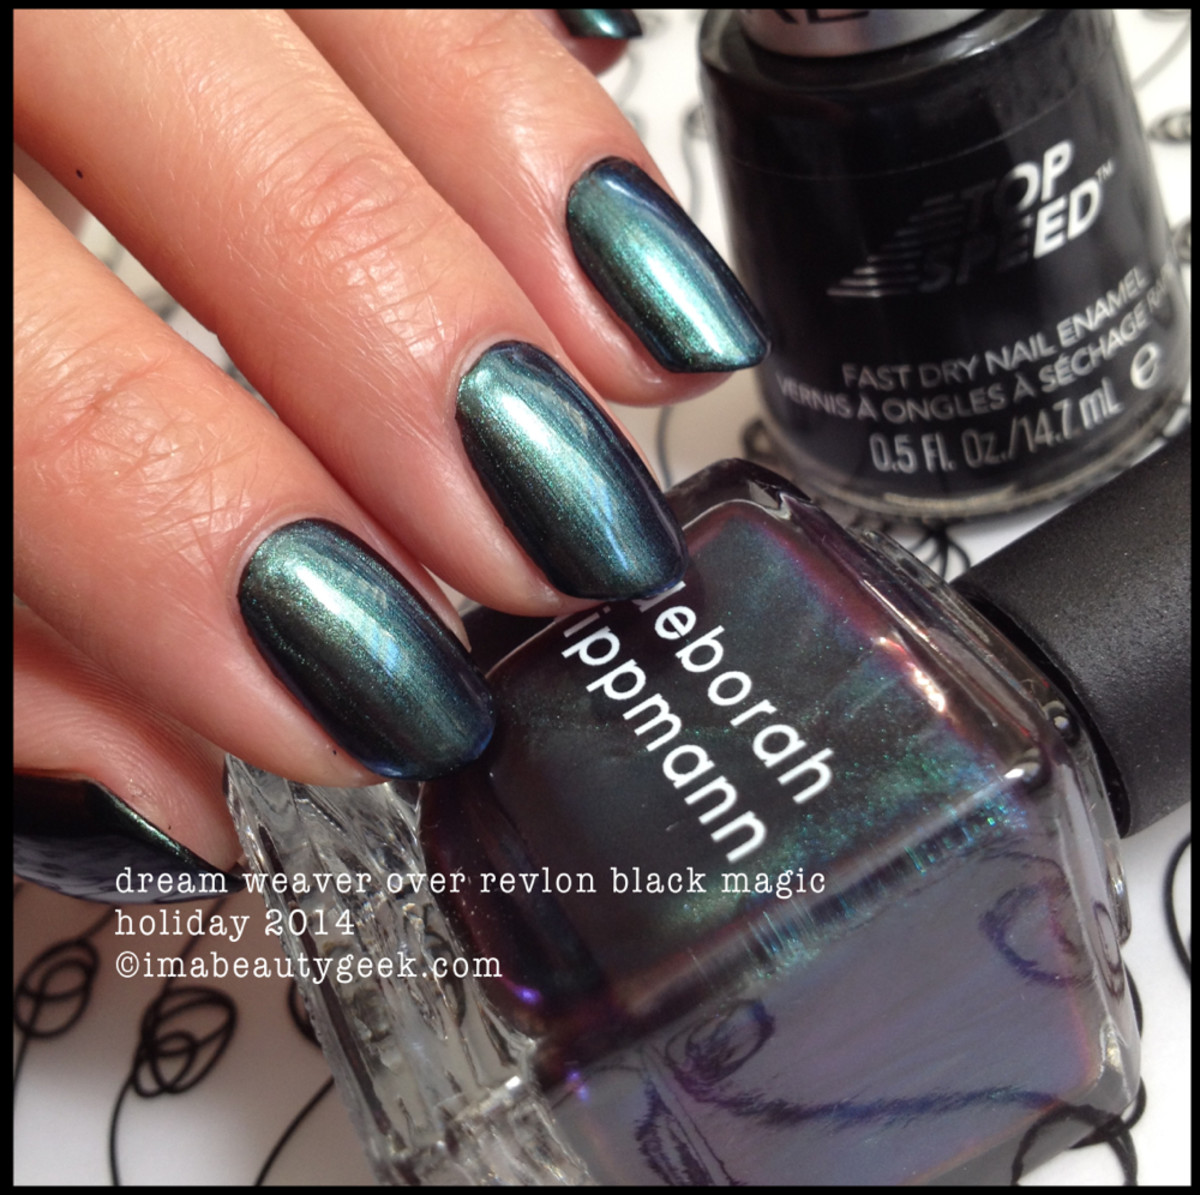 Deborah Lippmann Fantastical Holiday 2014 Dream Weaver over Black